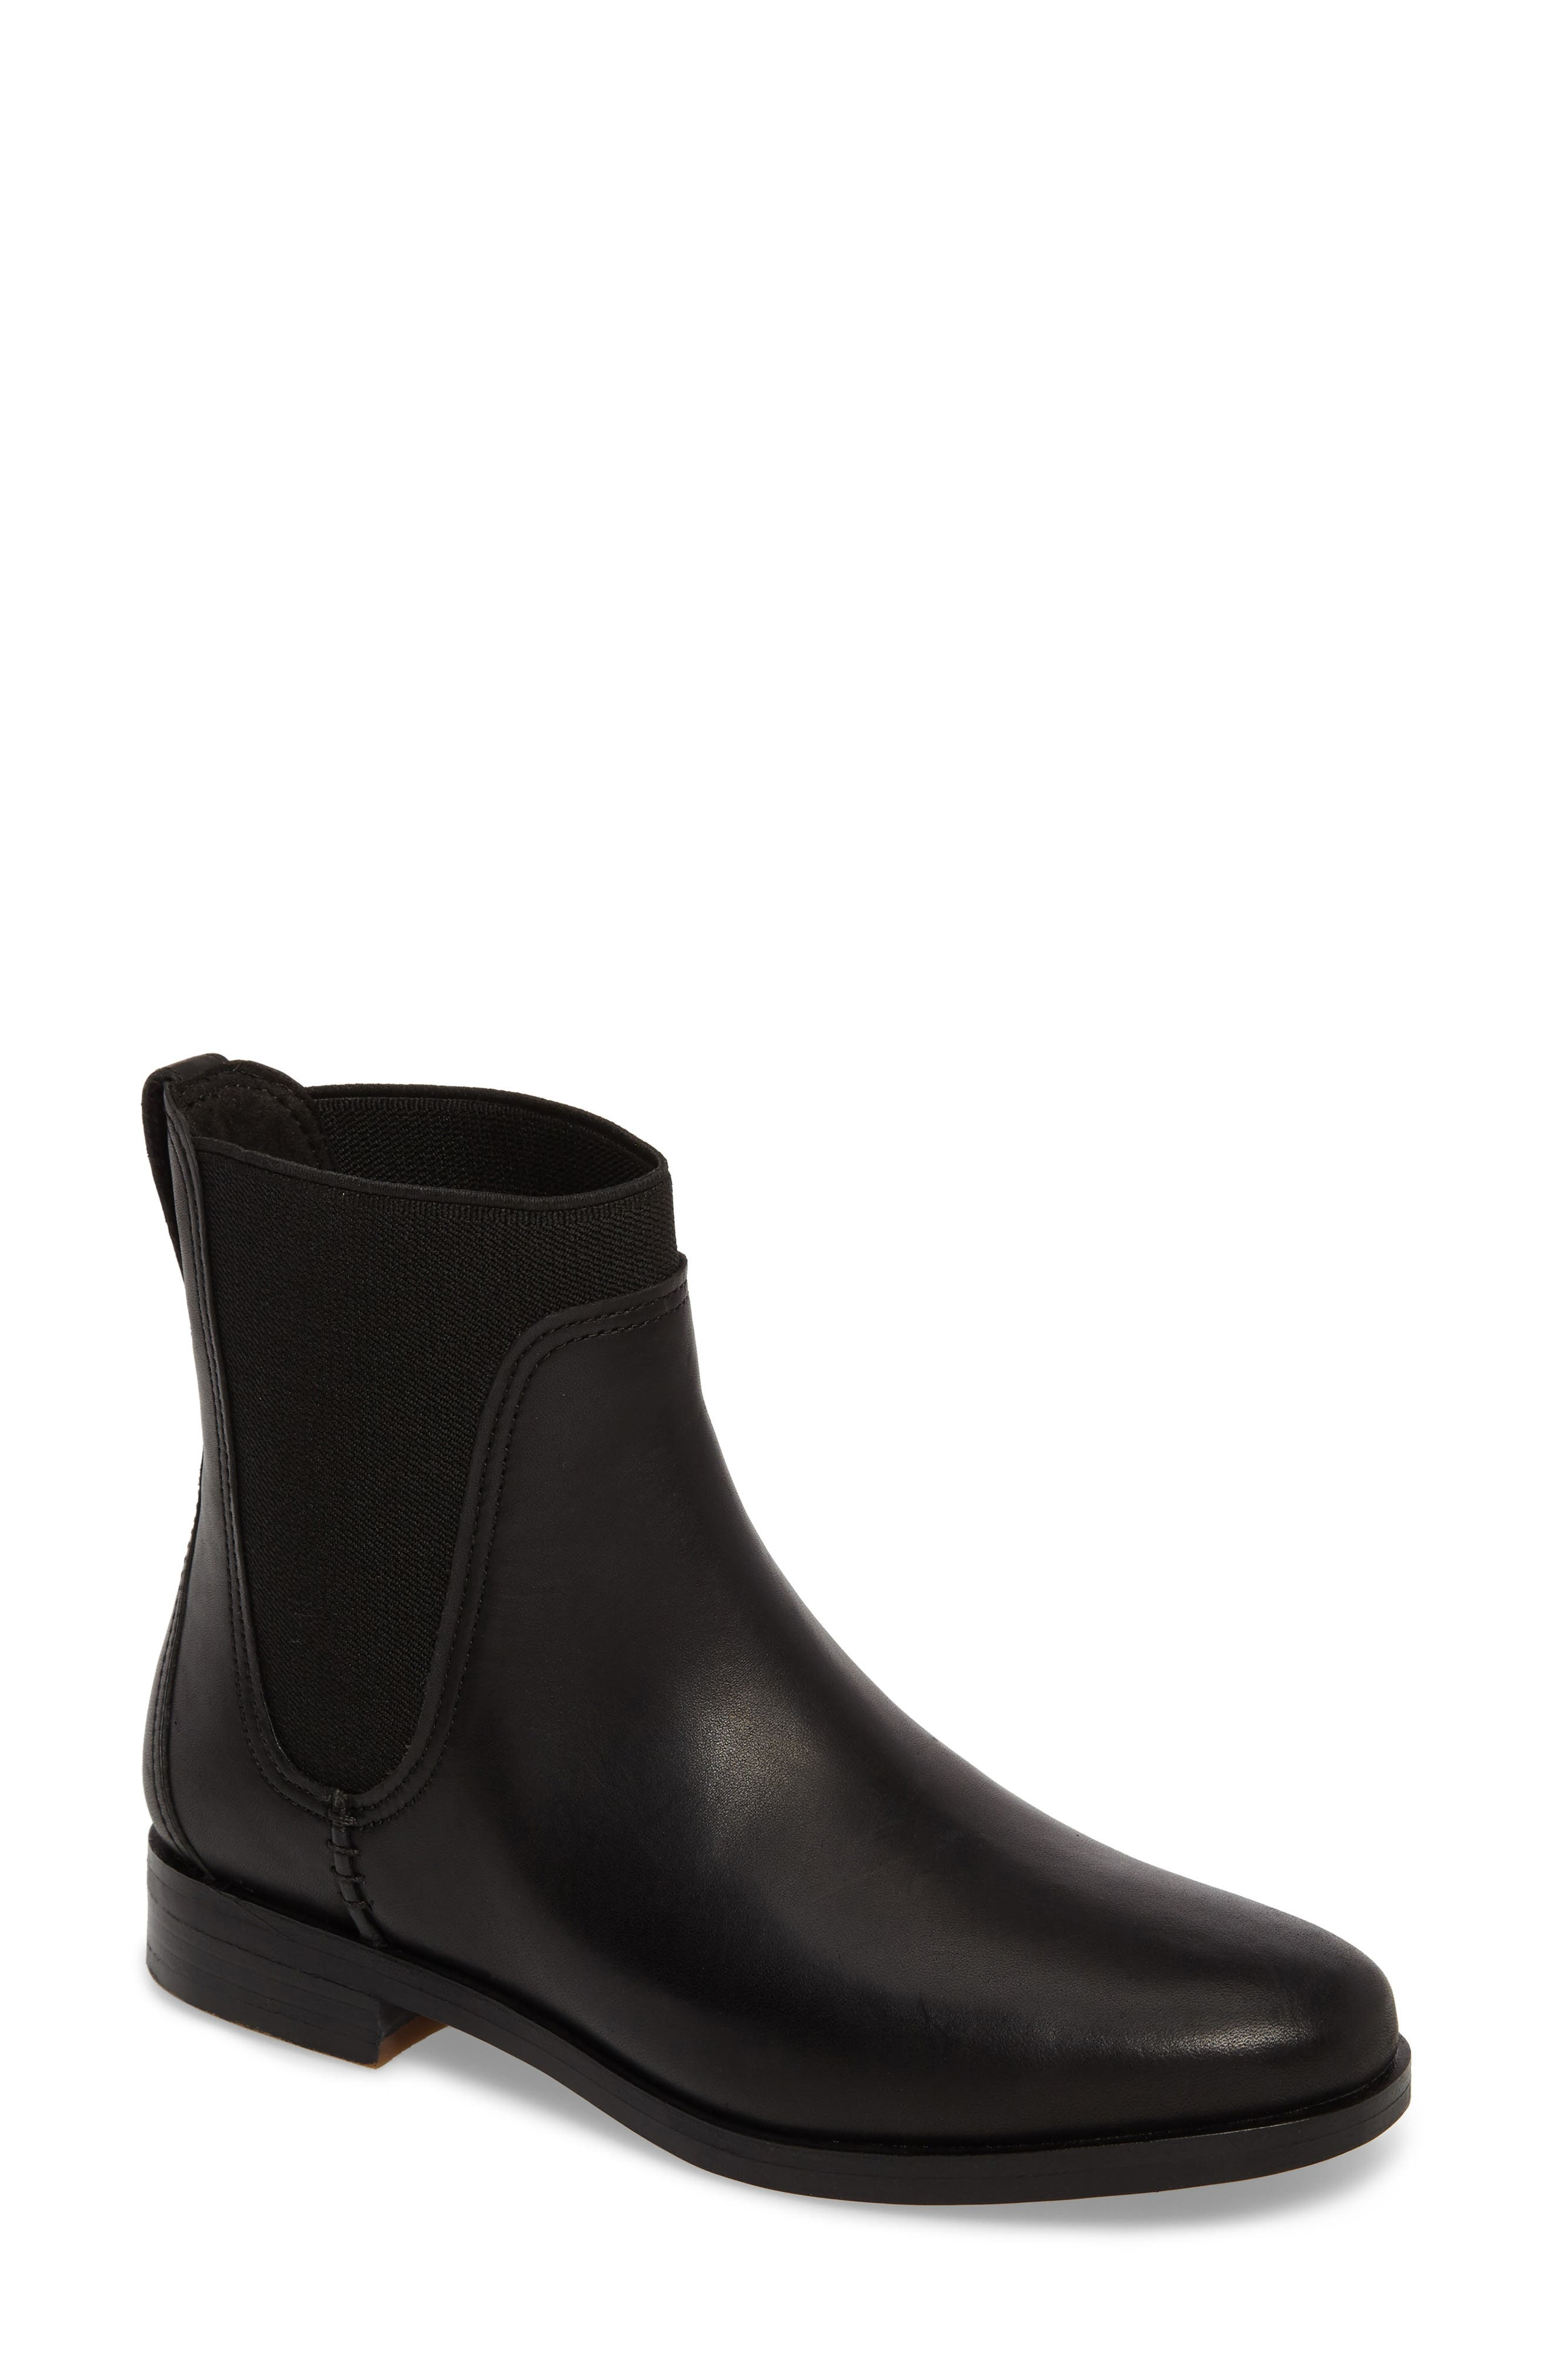 Somers Falls Water Resistant Chelsea Boot,                             Main thumbnail 1, color,                             Jet Black Swank Leather